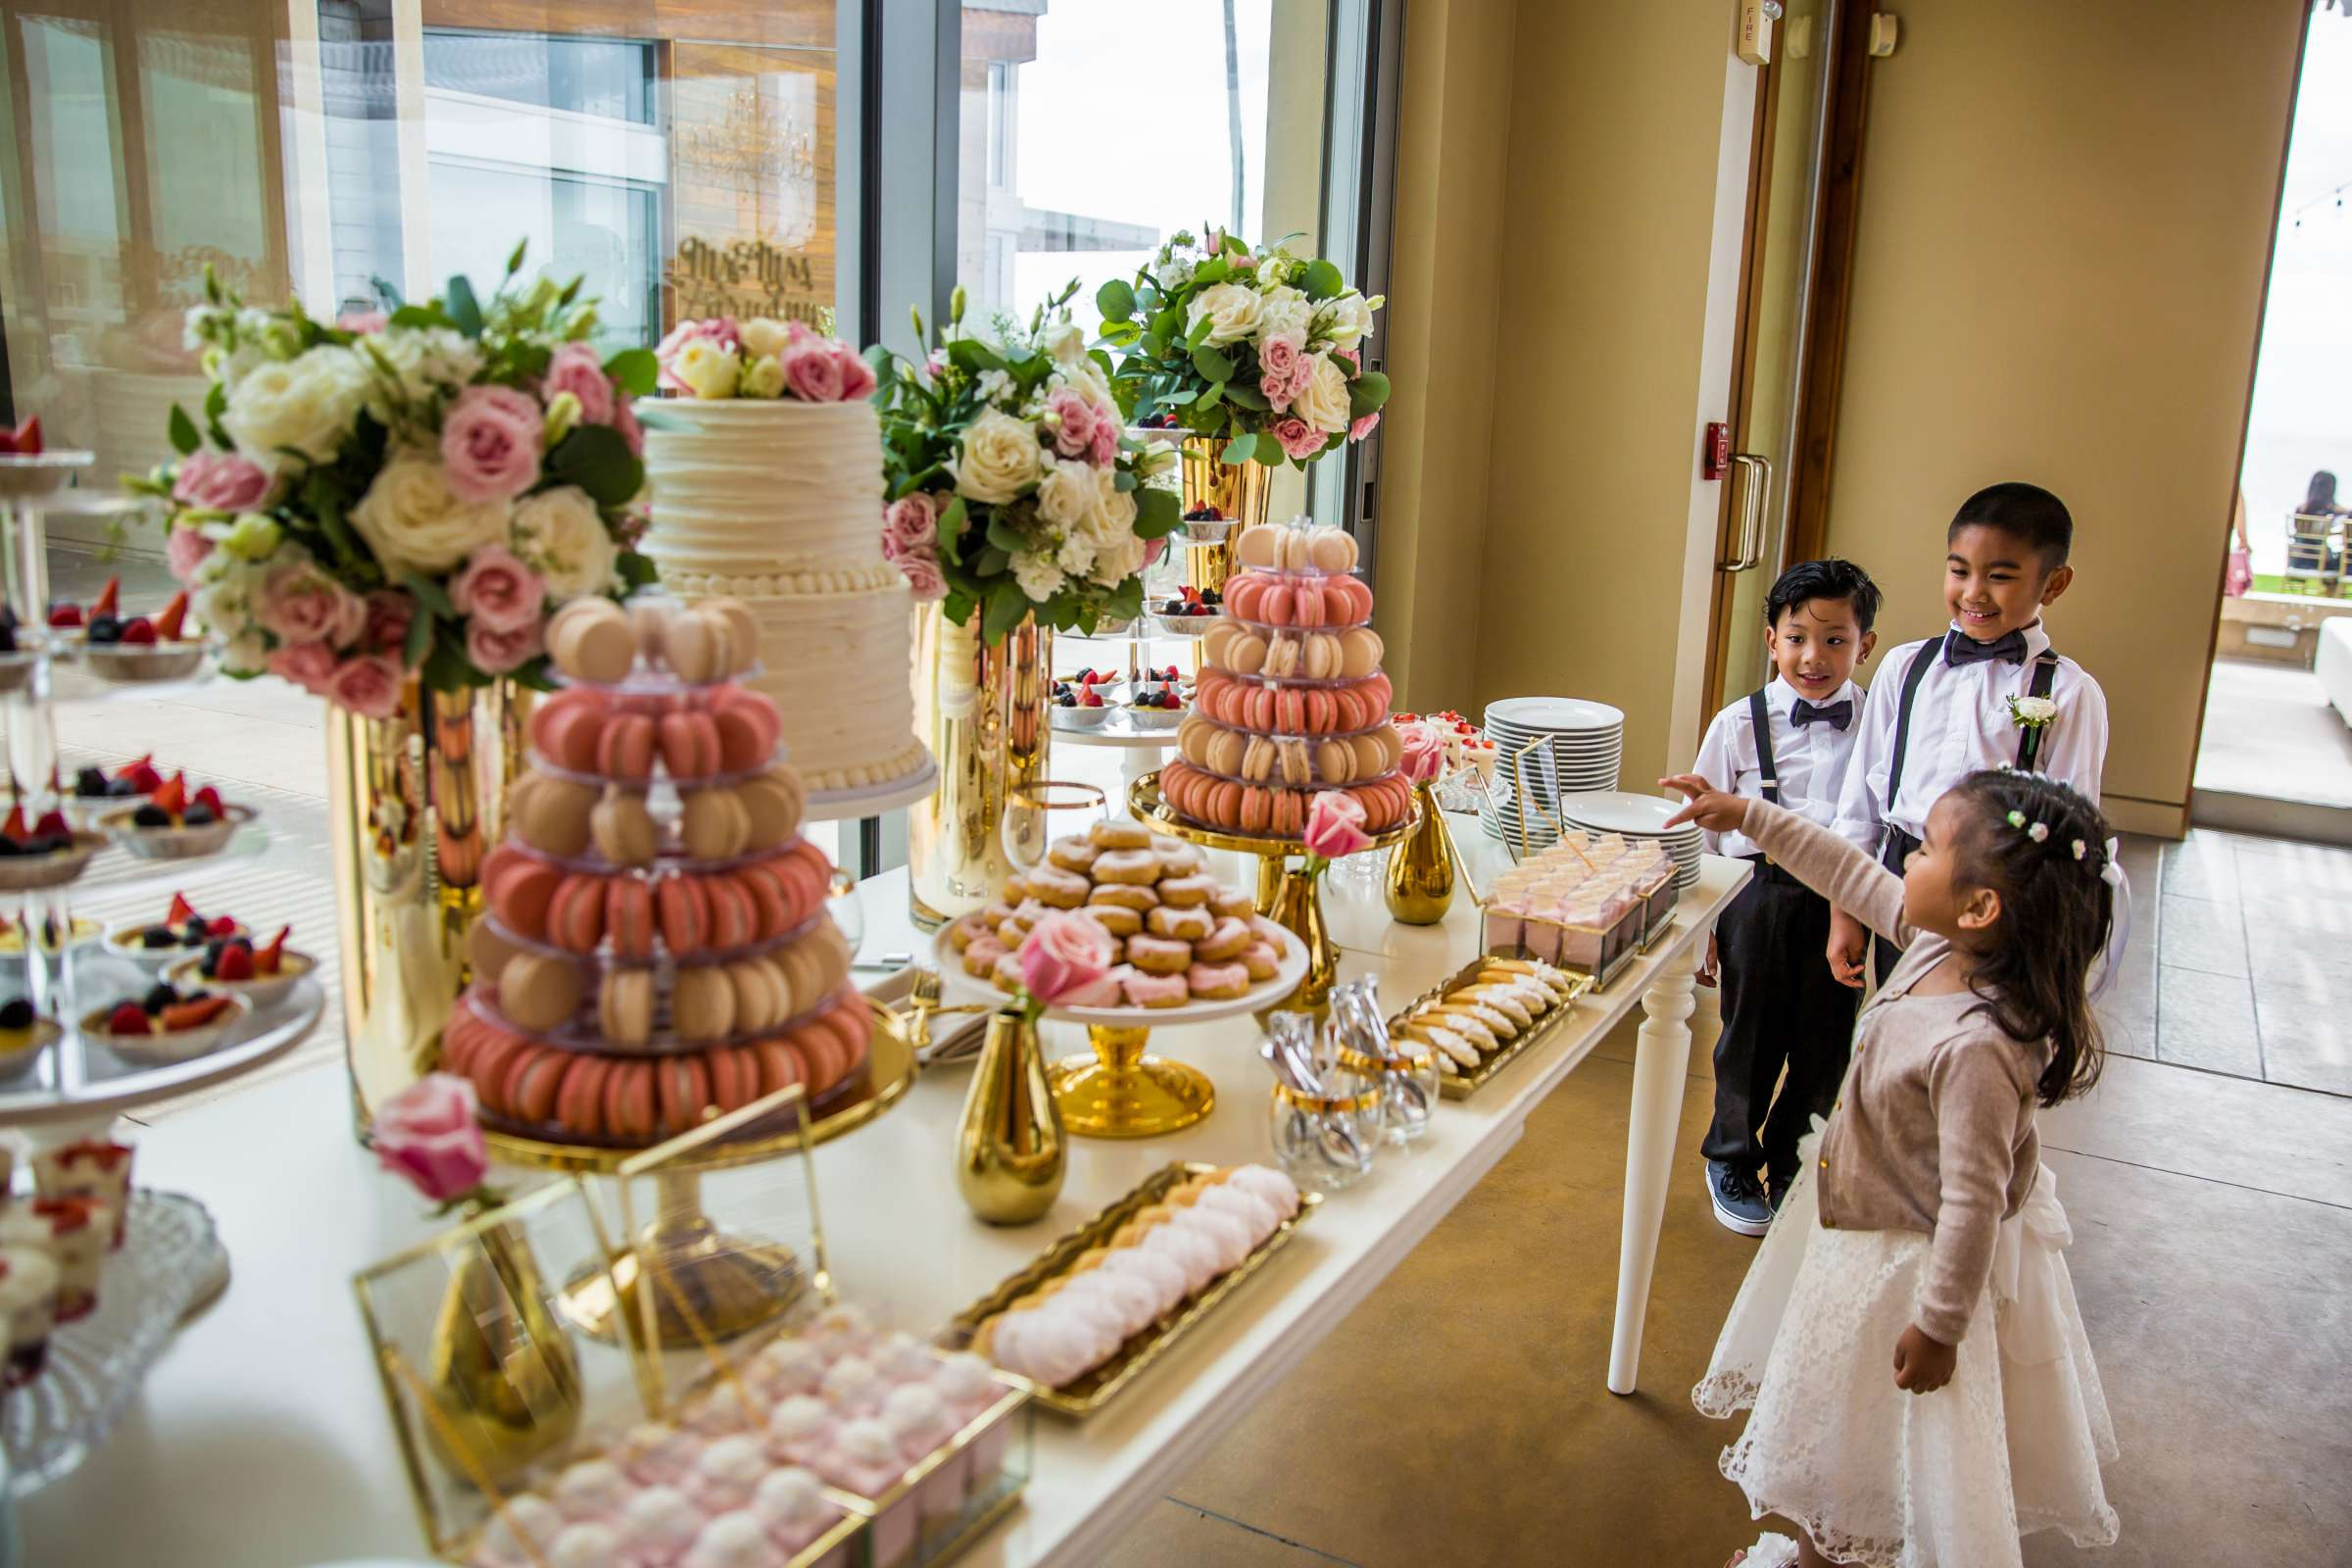 Scripps Seaside Forum Wedding coordinated by Lavish Weddings, Cindy and Justin Wedding Photo #381809 by True Photography